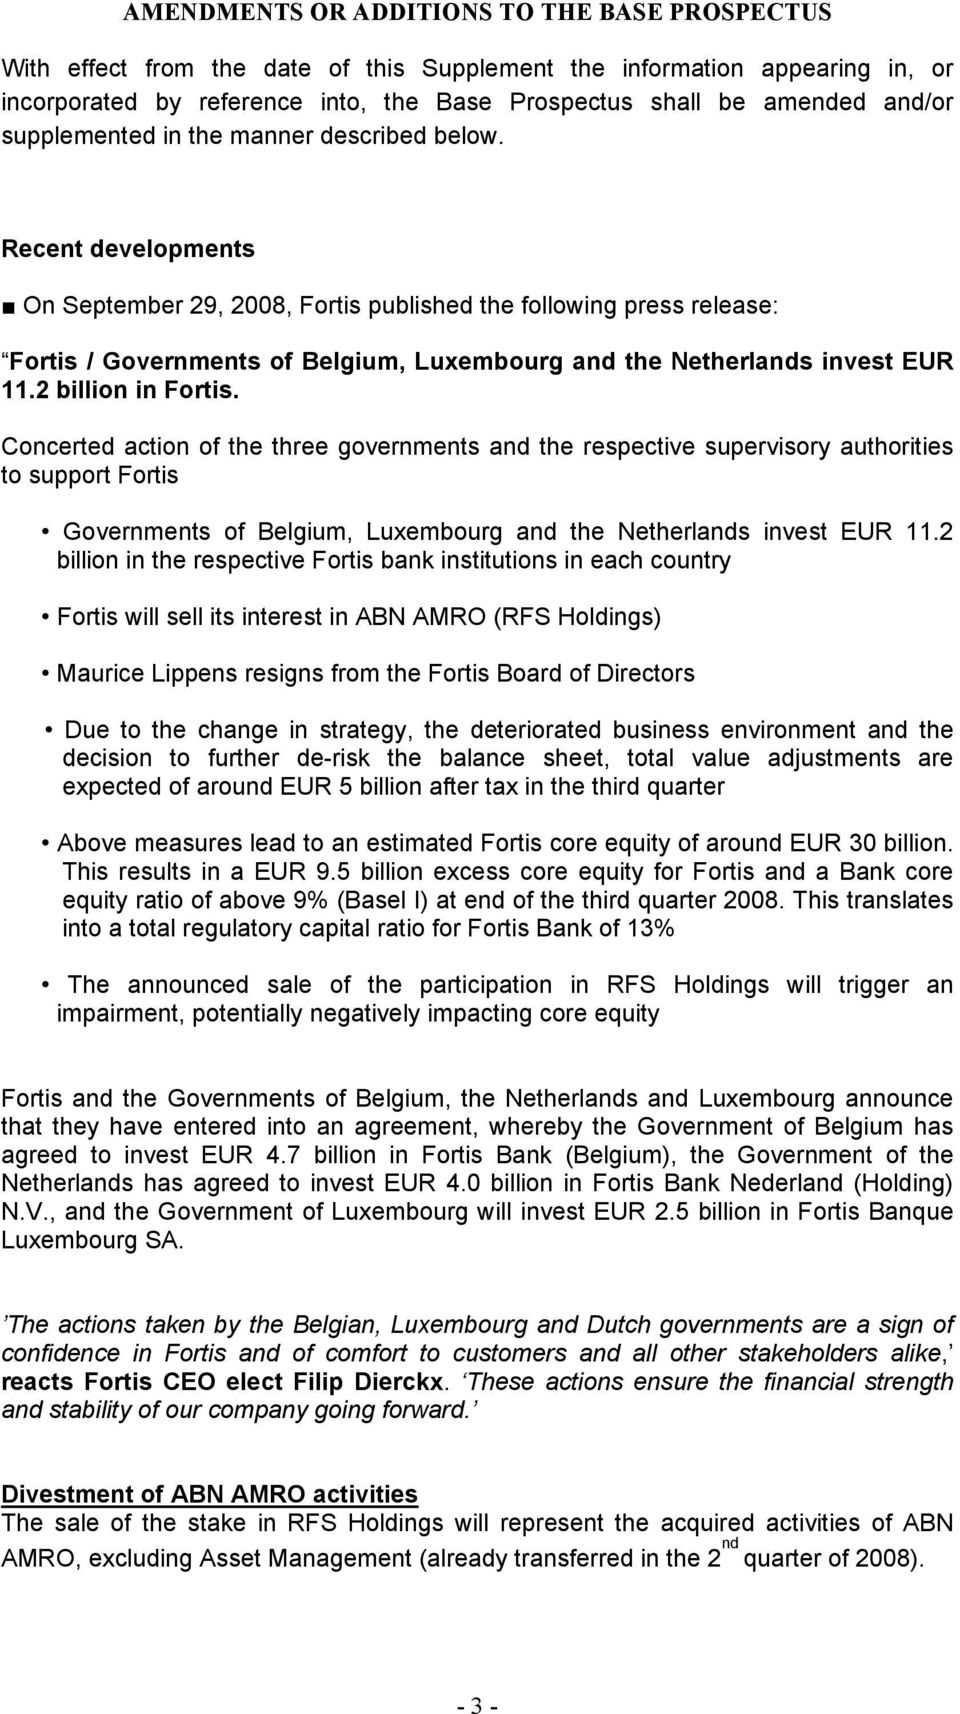 Recent developments On September 29, 2008, Fortis published the following press release: Fortis / Governments of Belgium, Luxembourg and the Netherlands invest EUR 11.2 billion in Fortis.